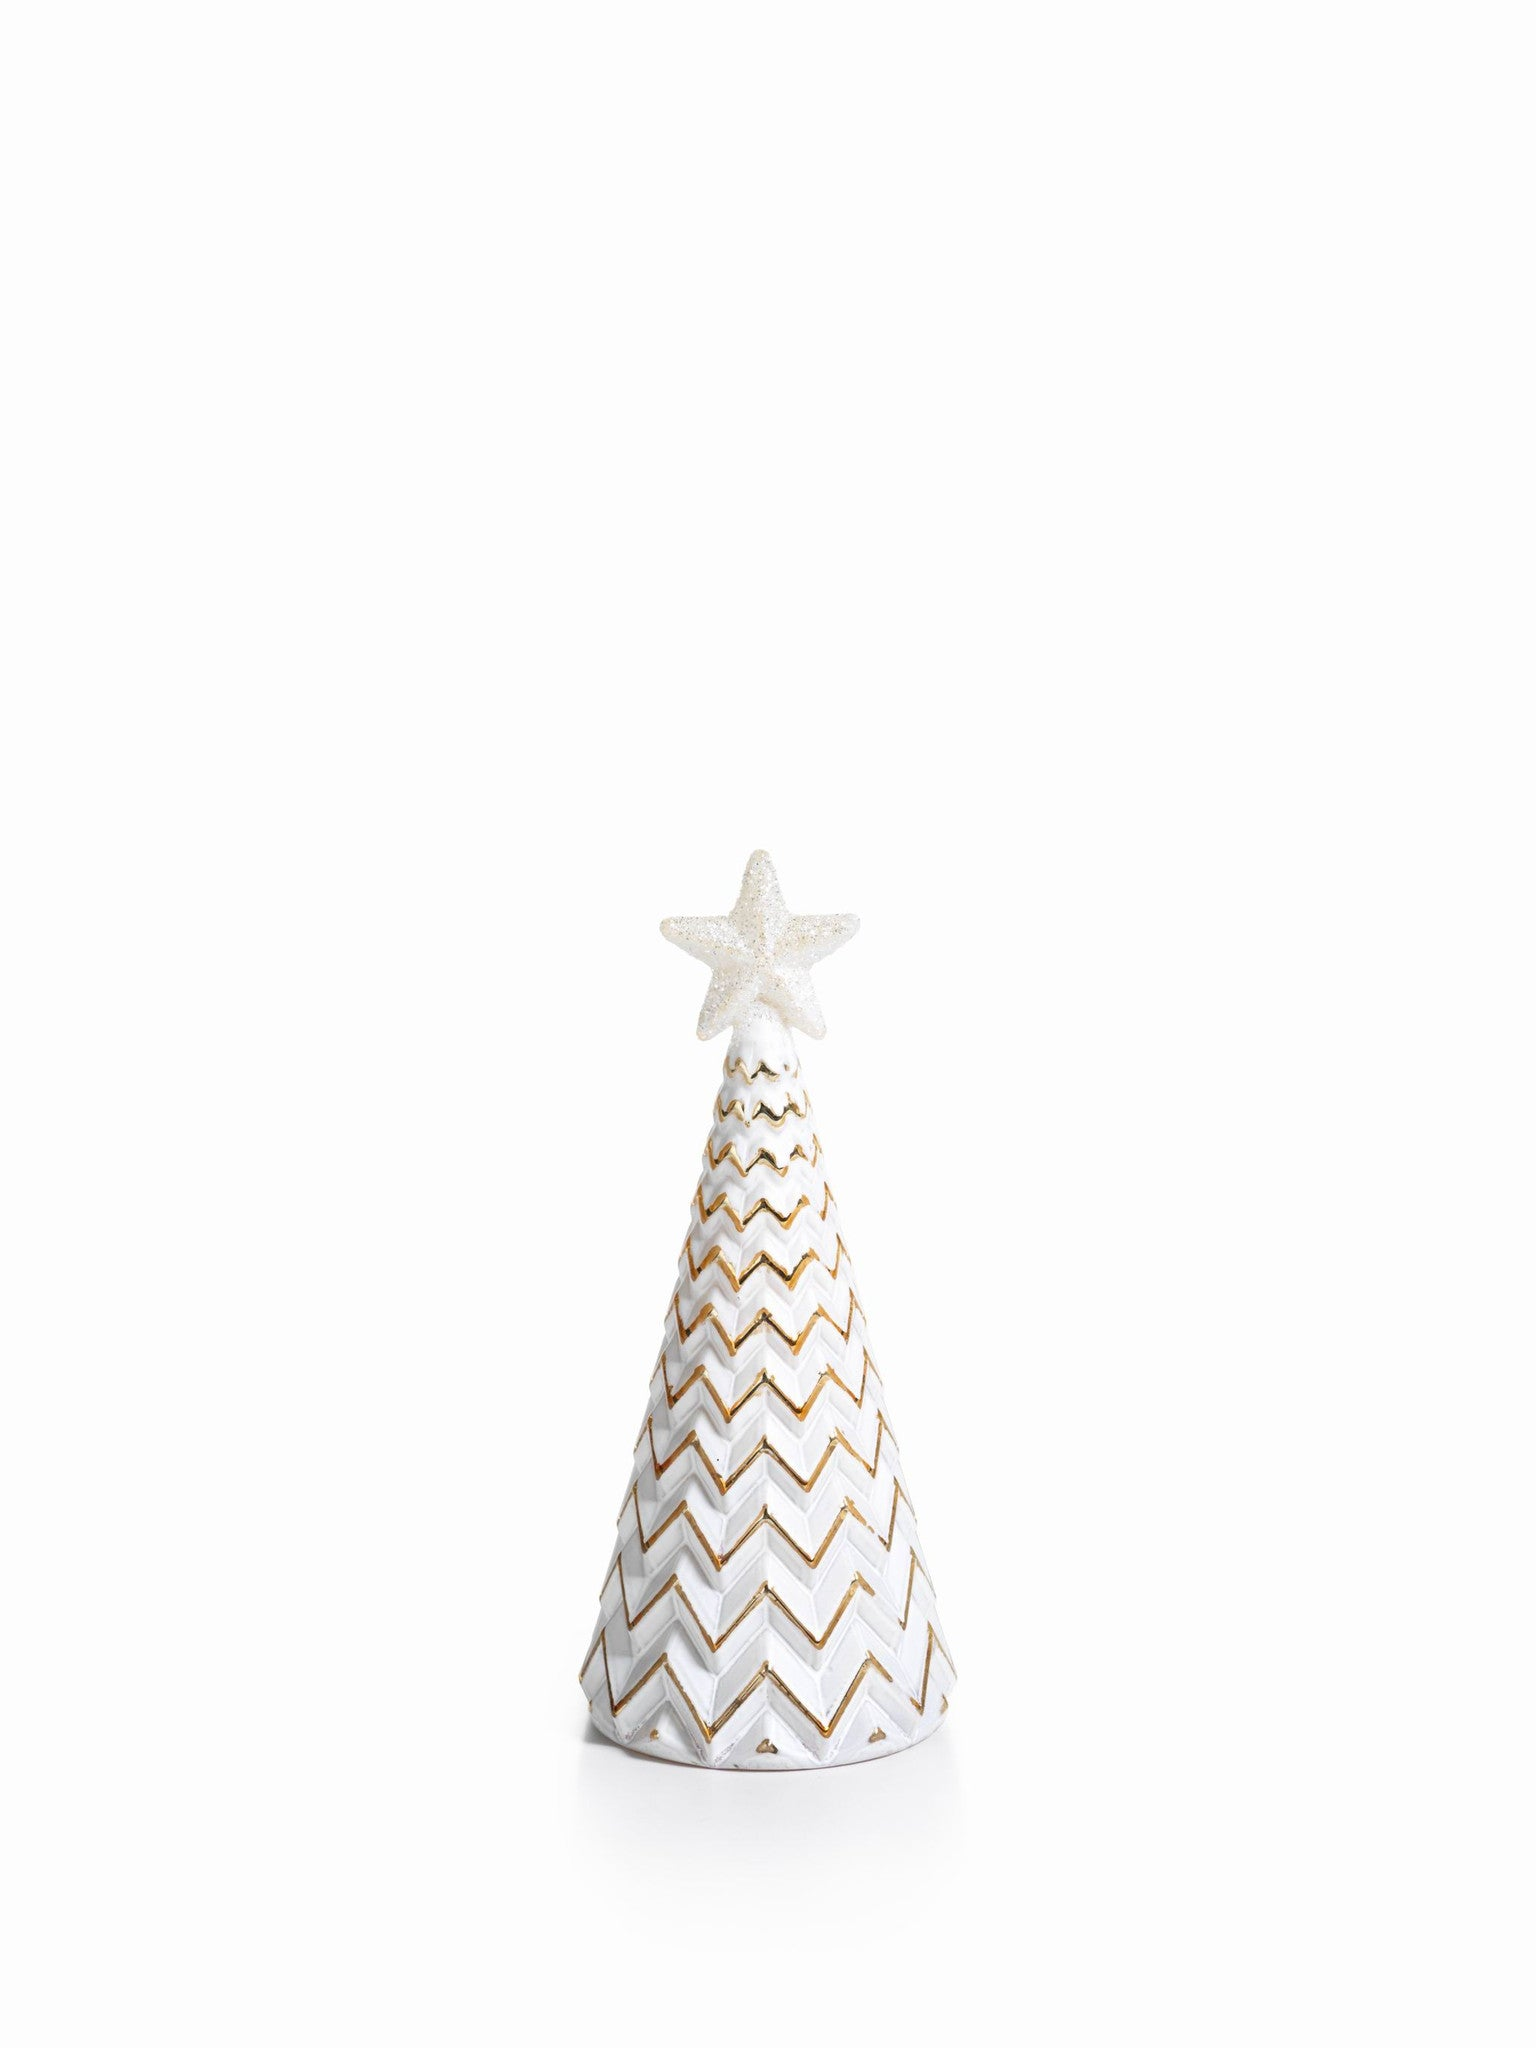 LED Glass Decorative Tree - Gold - Set of 6 - Small / ZigZag - CARLYLE AVENUE - 7